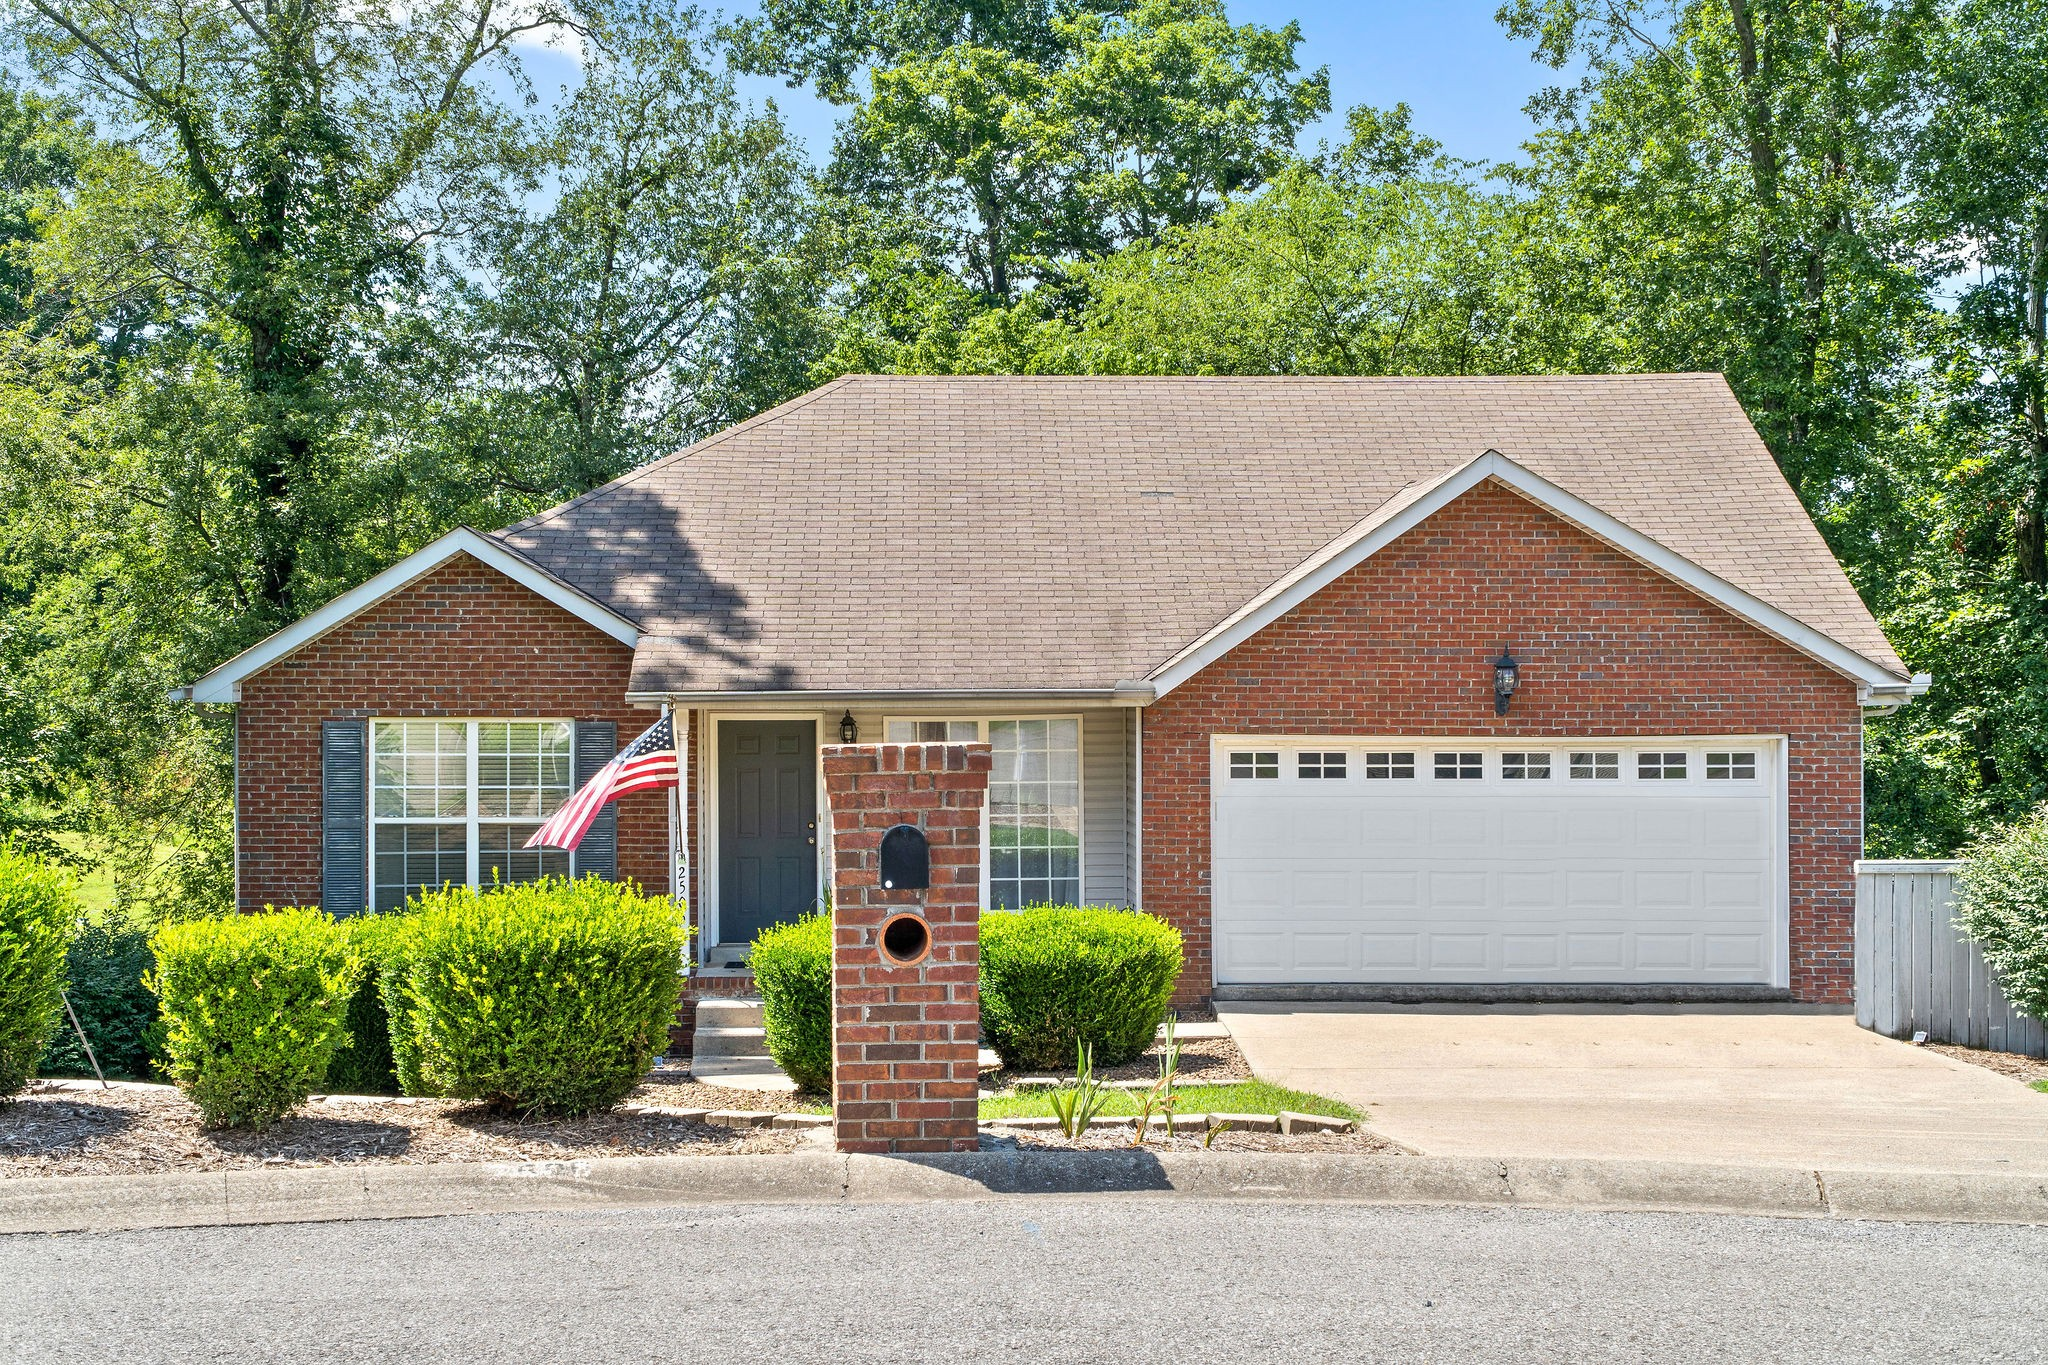 2506 Widgeon Dr Property Photo - Clarksville, TN real estate listing